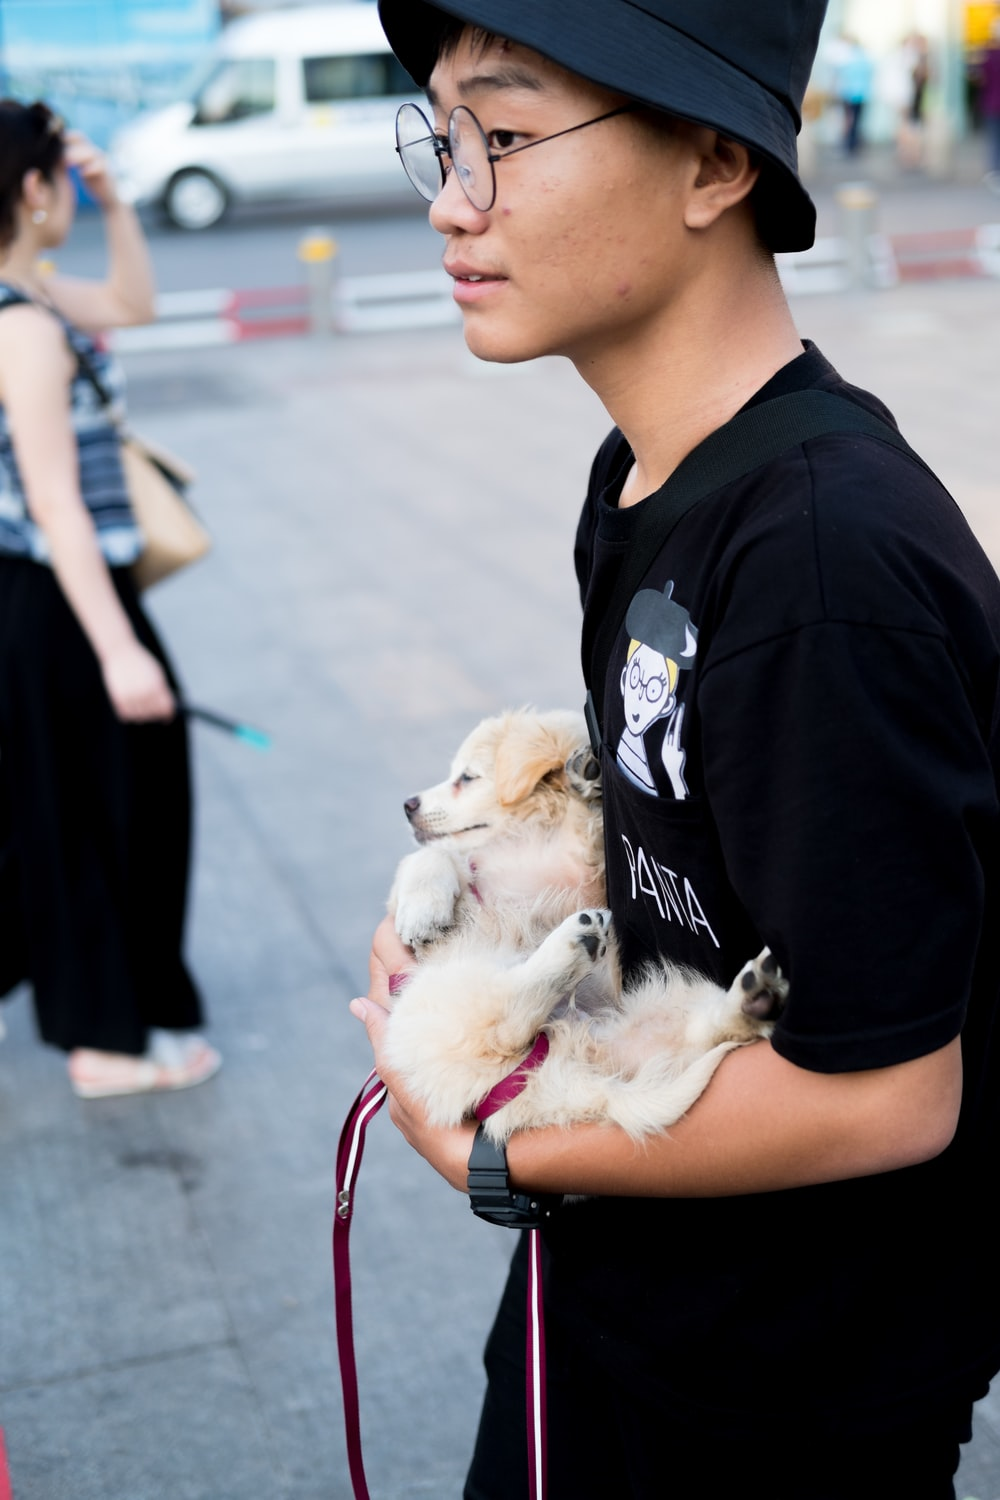 man carrying puppy